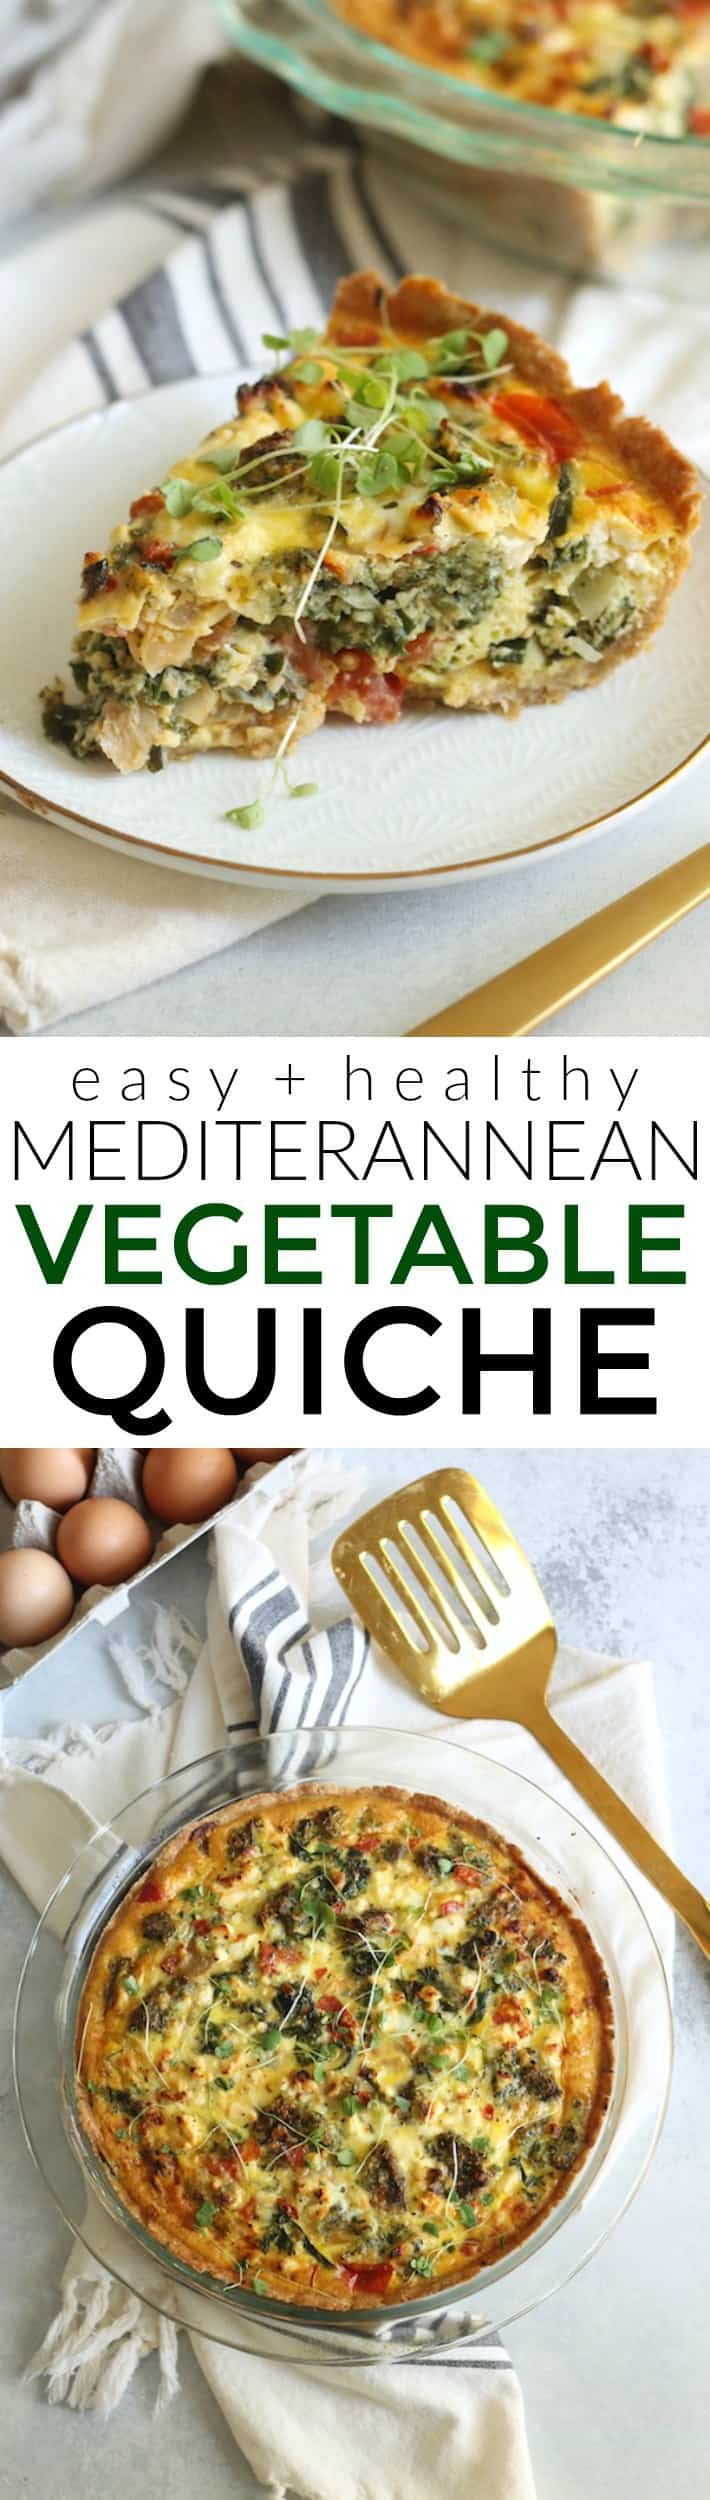 Packed with veggies, tangy feta, and fluffy eggs, this delicious Mediterranean Vegetable Quiche is a wholesome breakfast, lunch or dinner option!